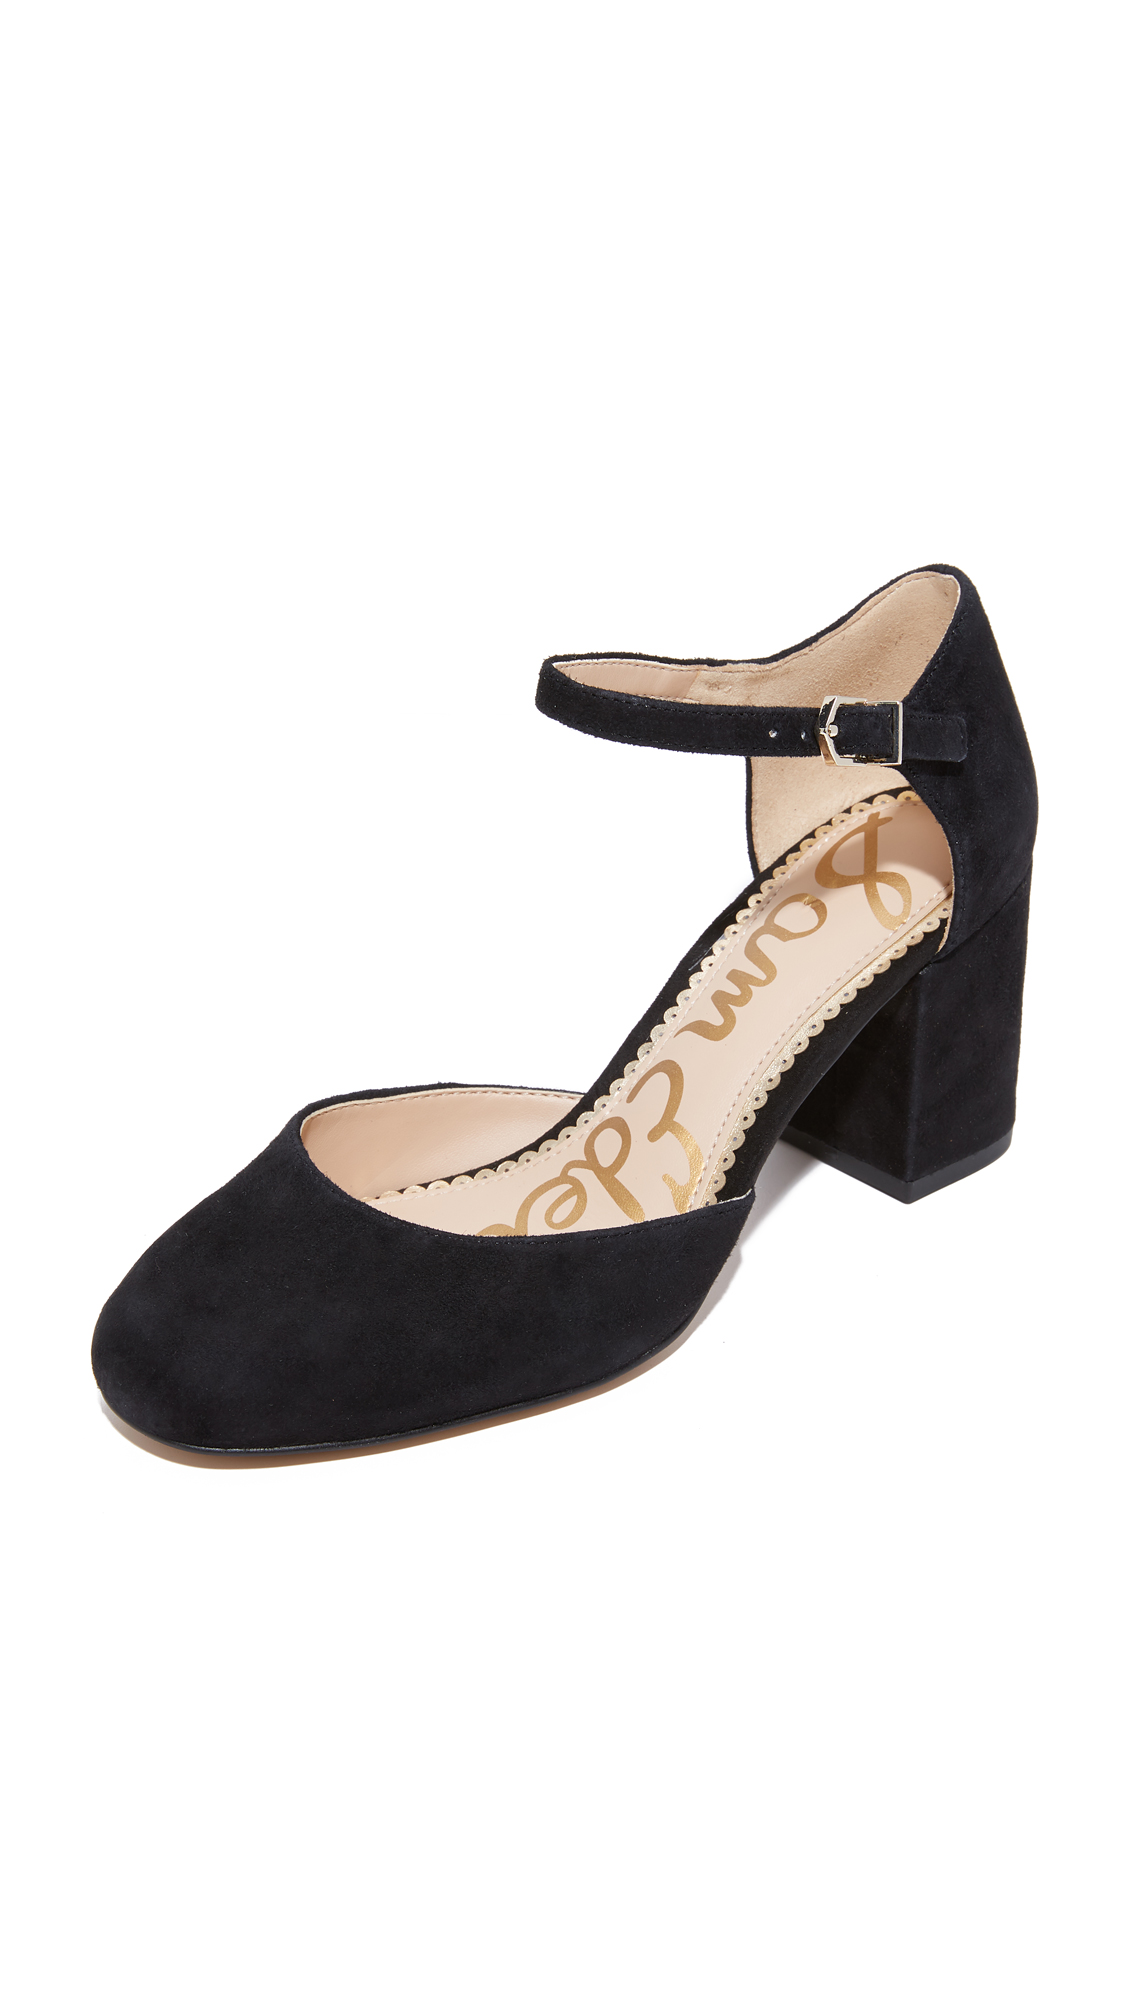 Sam Edelman Clover Pumps - Black